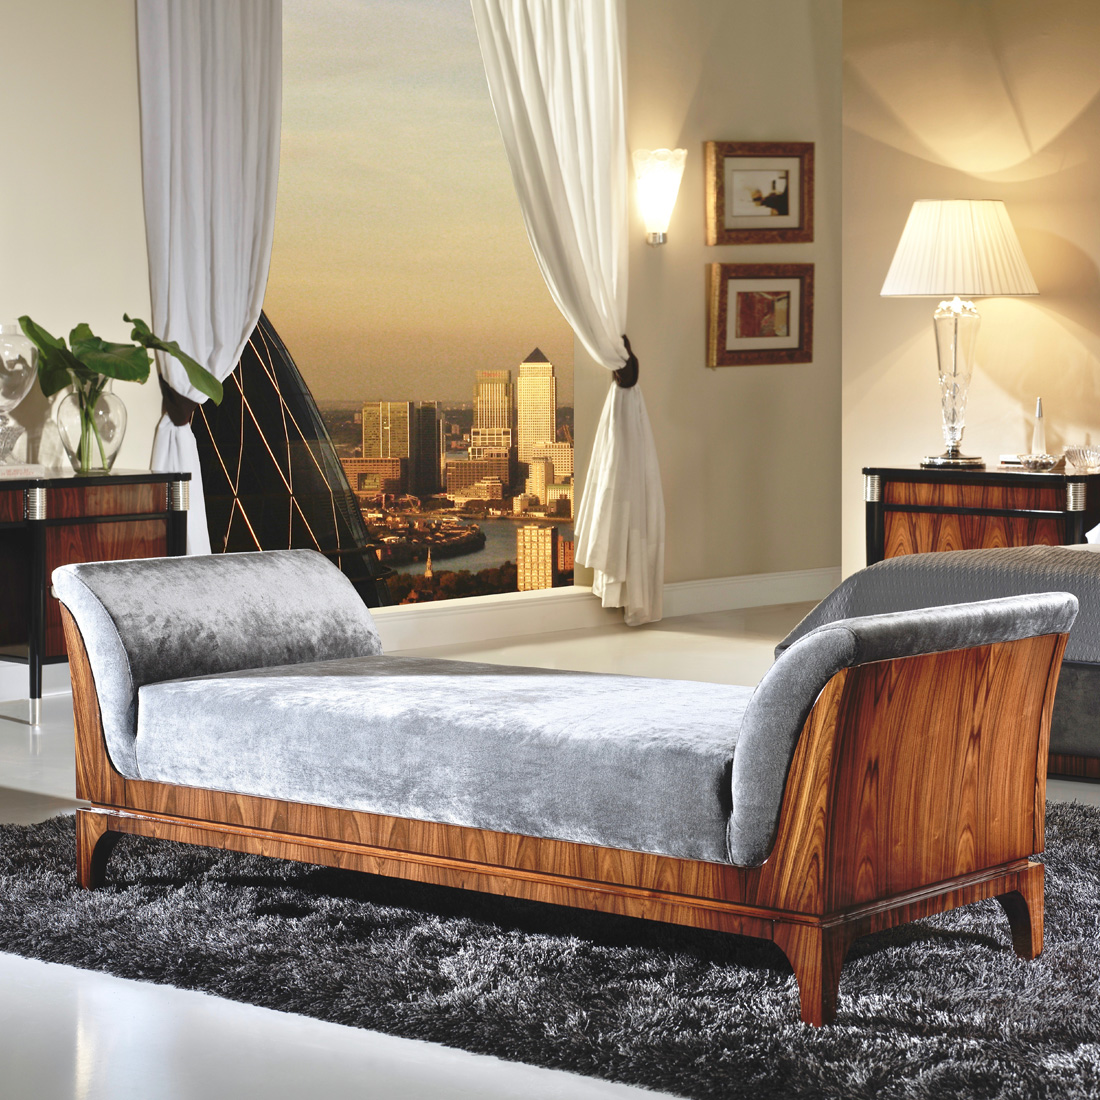 BEDROOM, BENCH, CHAIR, STOOLS